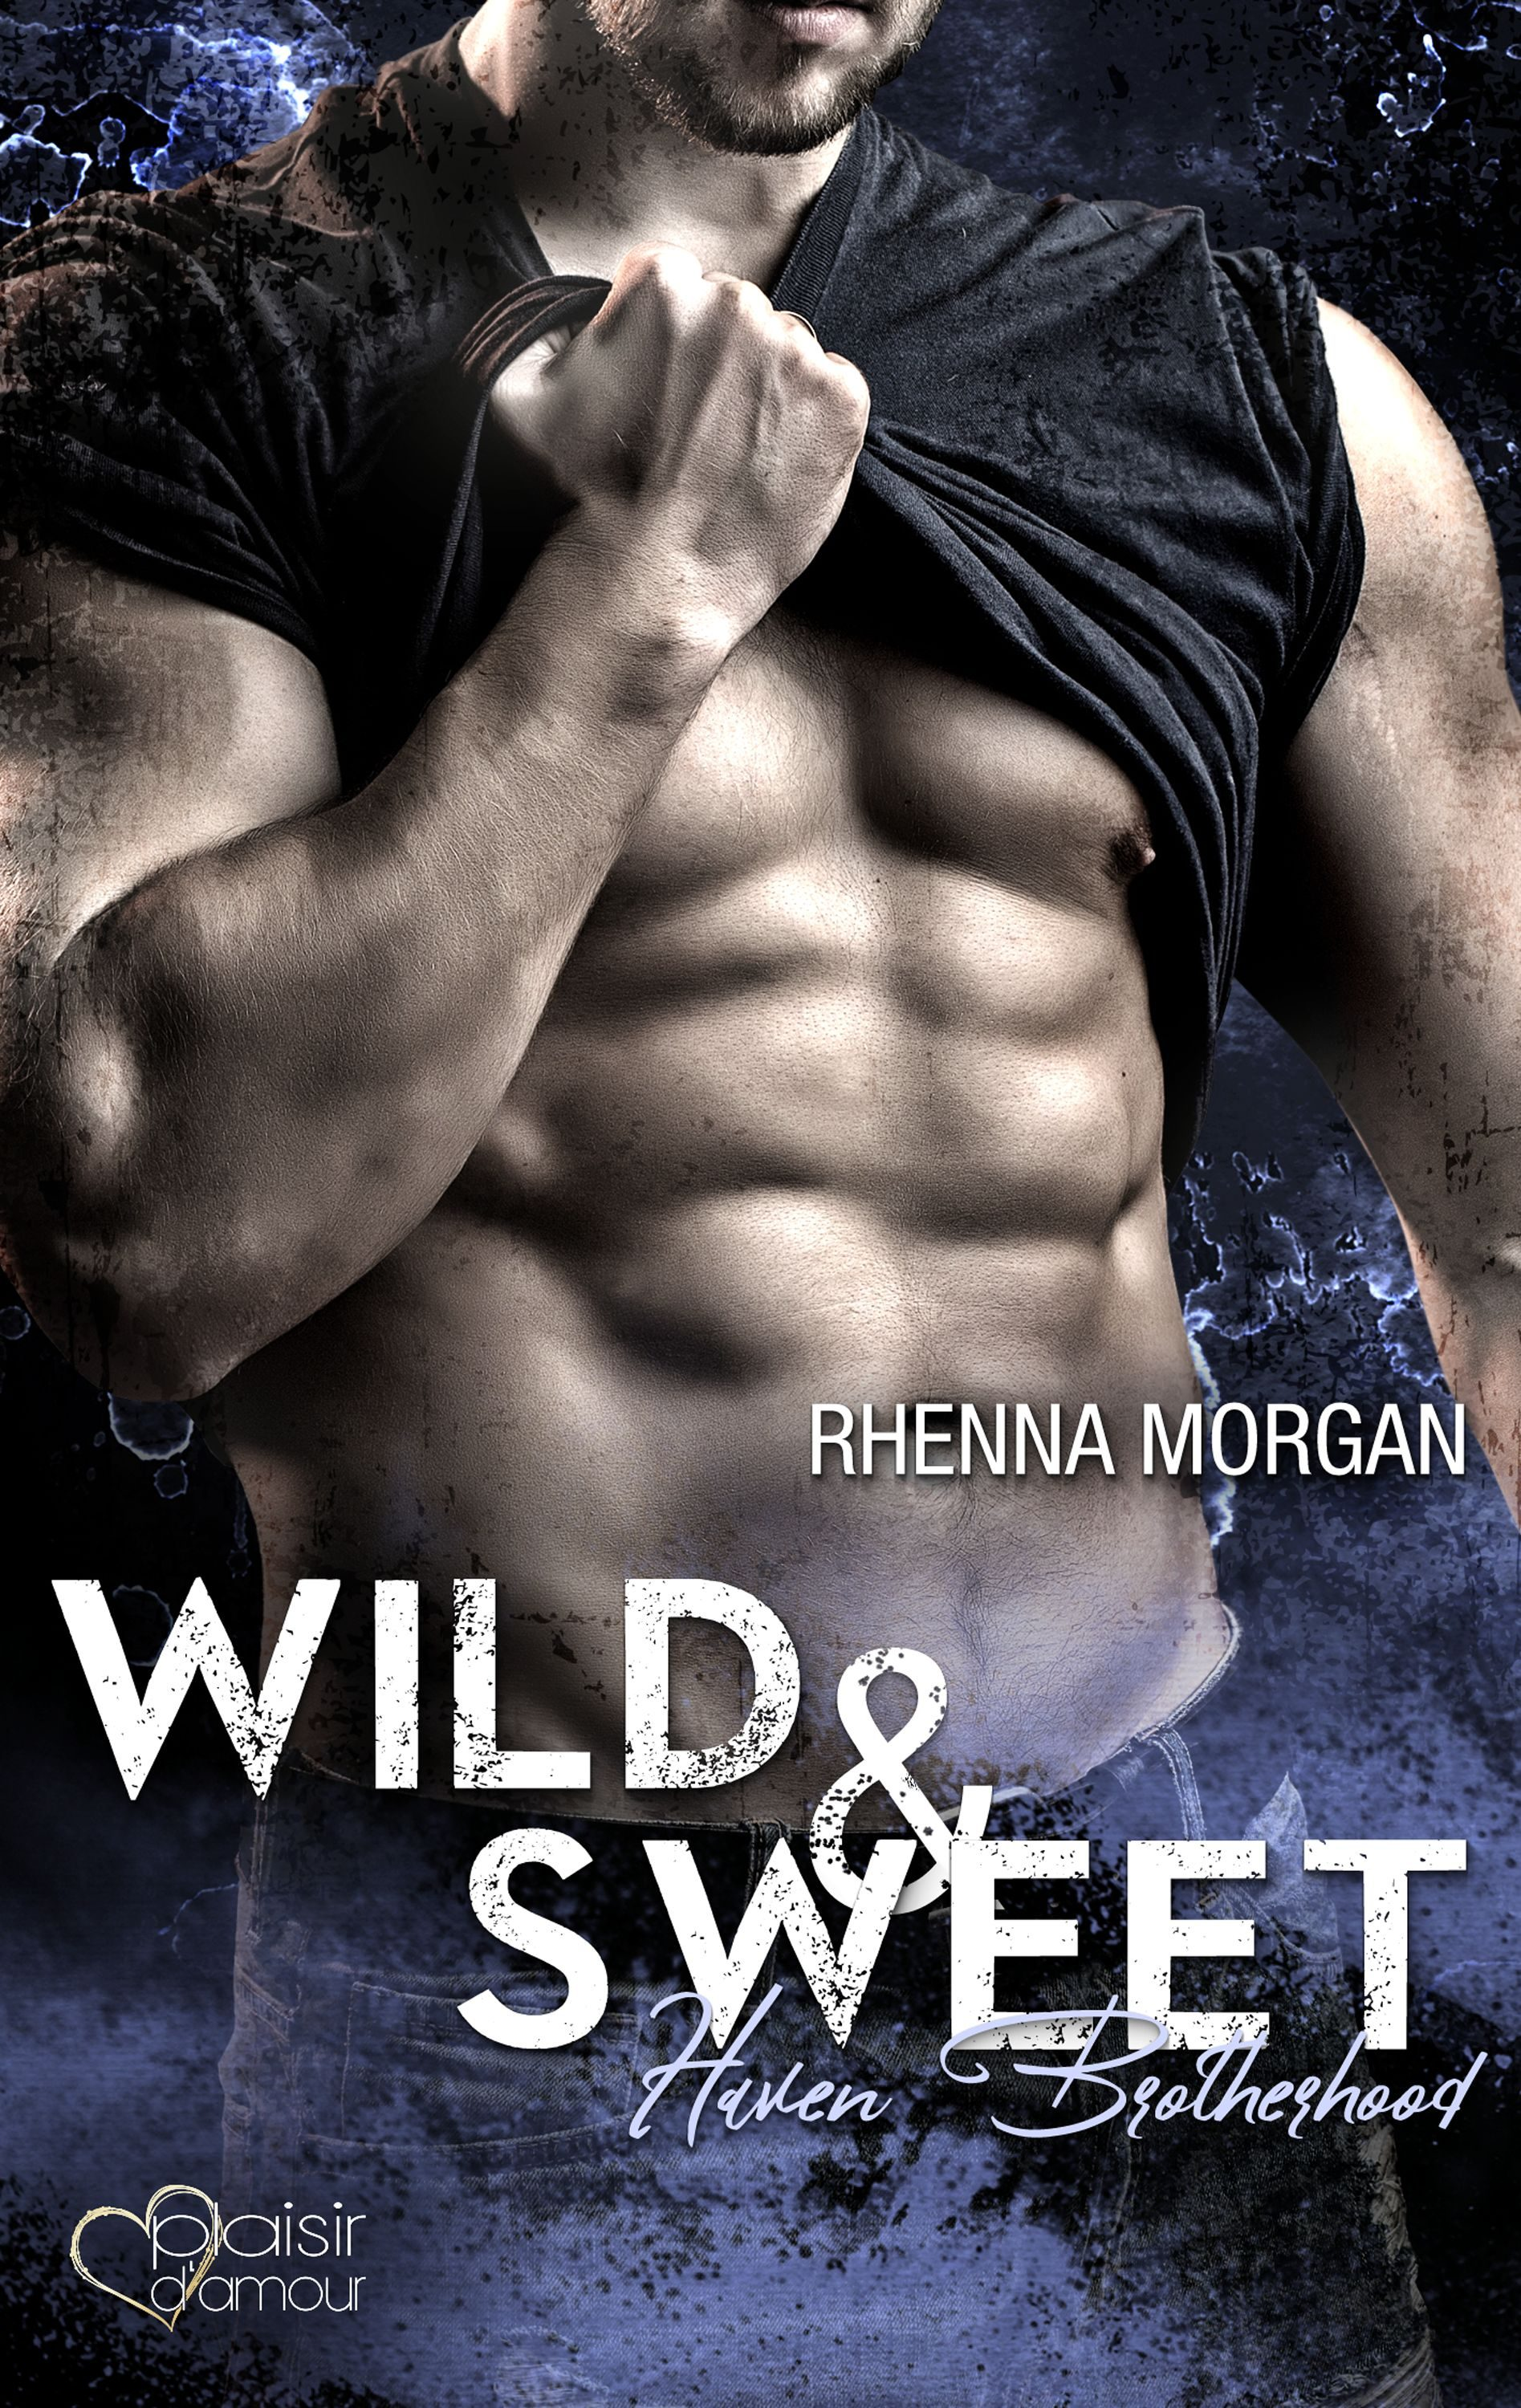 Libros De Kick Boxing Pdf Gratis Haven Brotherhood Wild Sweet Ebook Rhenna Morgan Descargar Libro Pdf O Epub 9783864953279